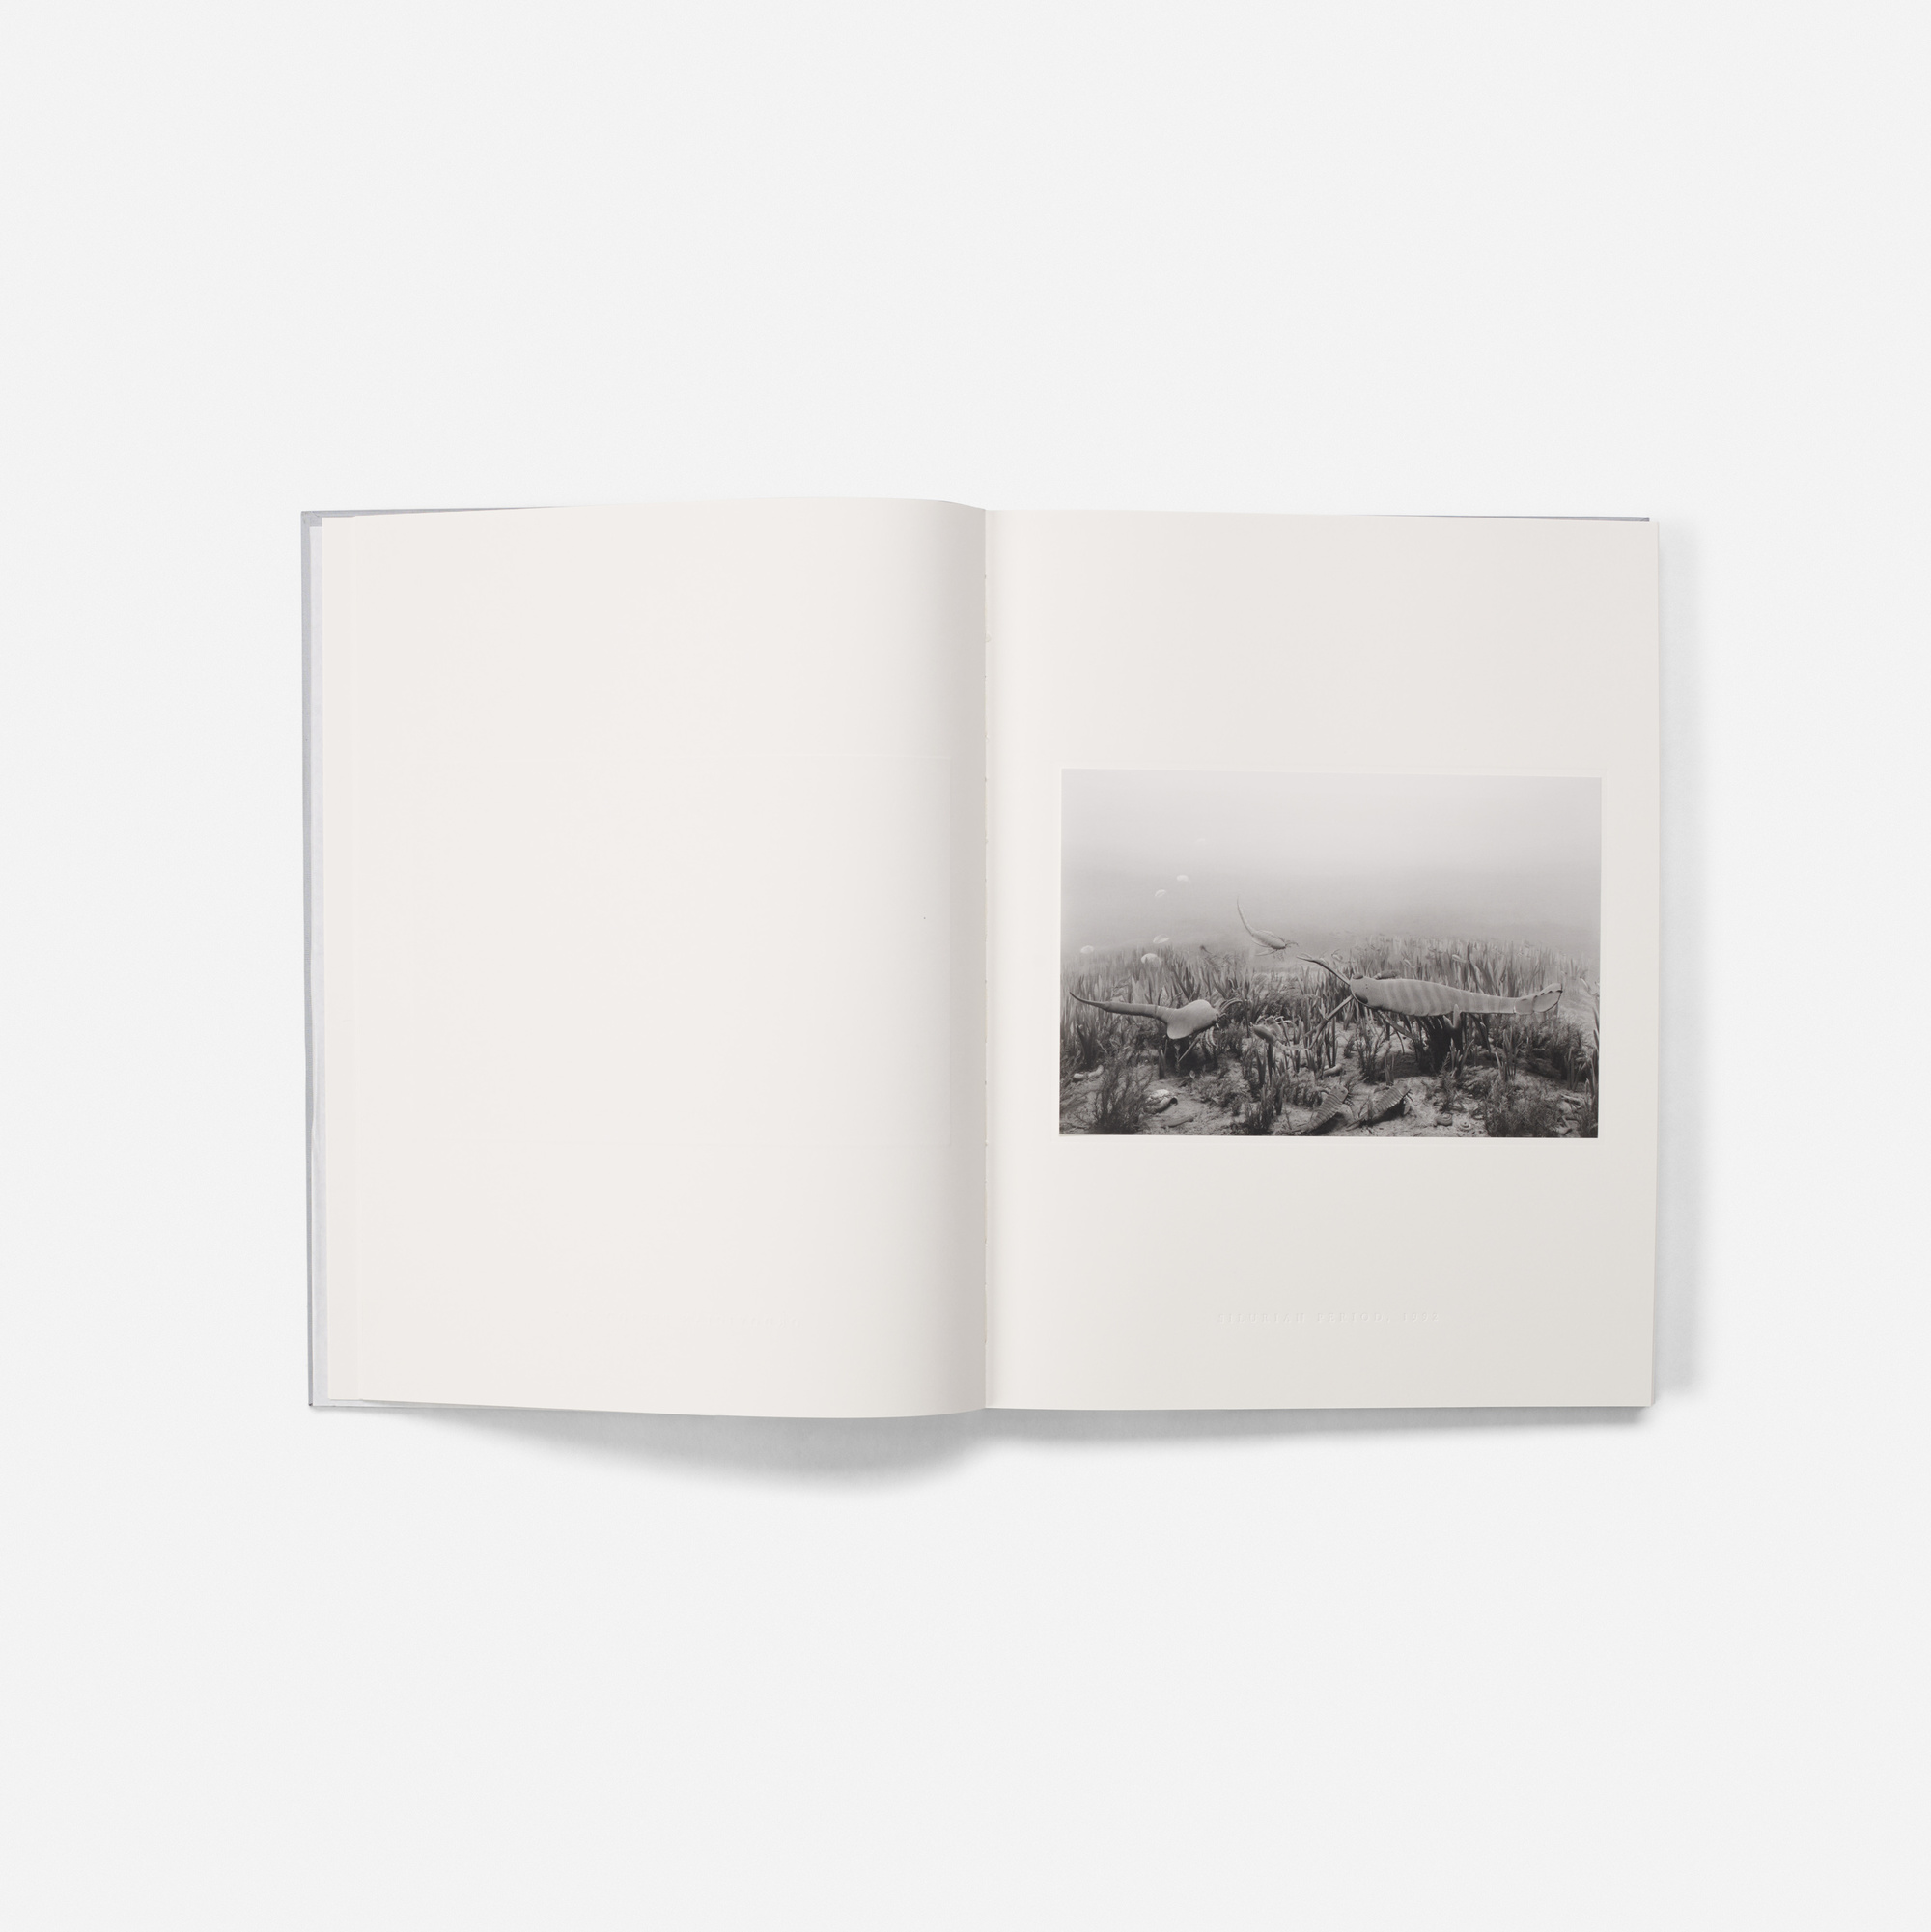 230: Hiroshi Sugimoto / The Long Never and Lightning Fields 304 (9 of 10)